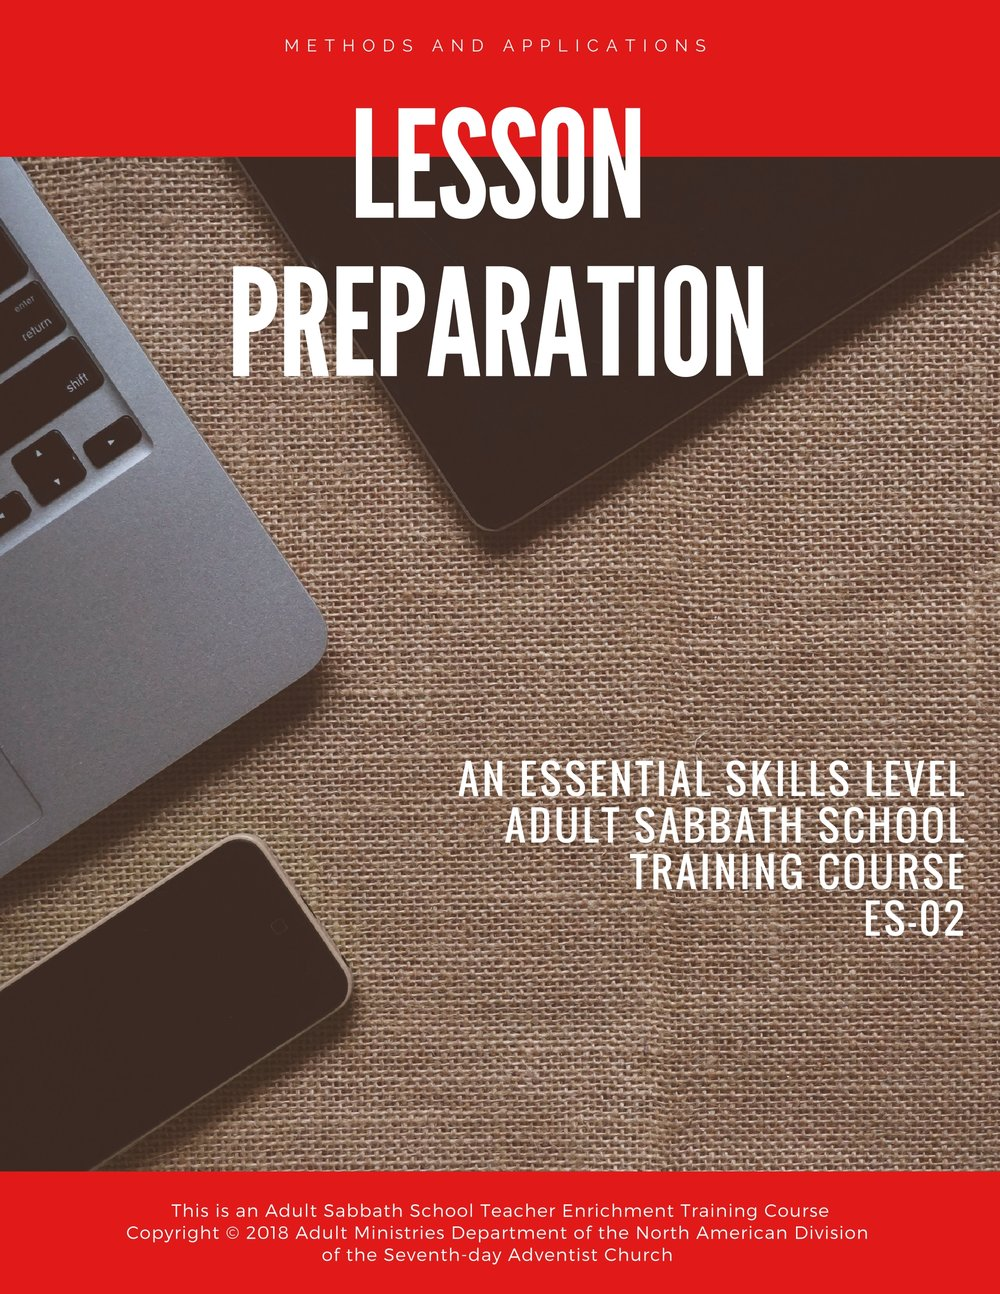 This class on Lesson Preparation deals with the technology of preparing a Sabbath School lesson based on the use of the Adult Bible Study Guide. - CLICK COVER TO VIEW>>>